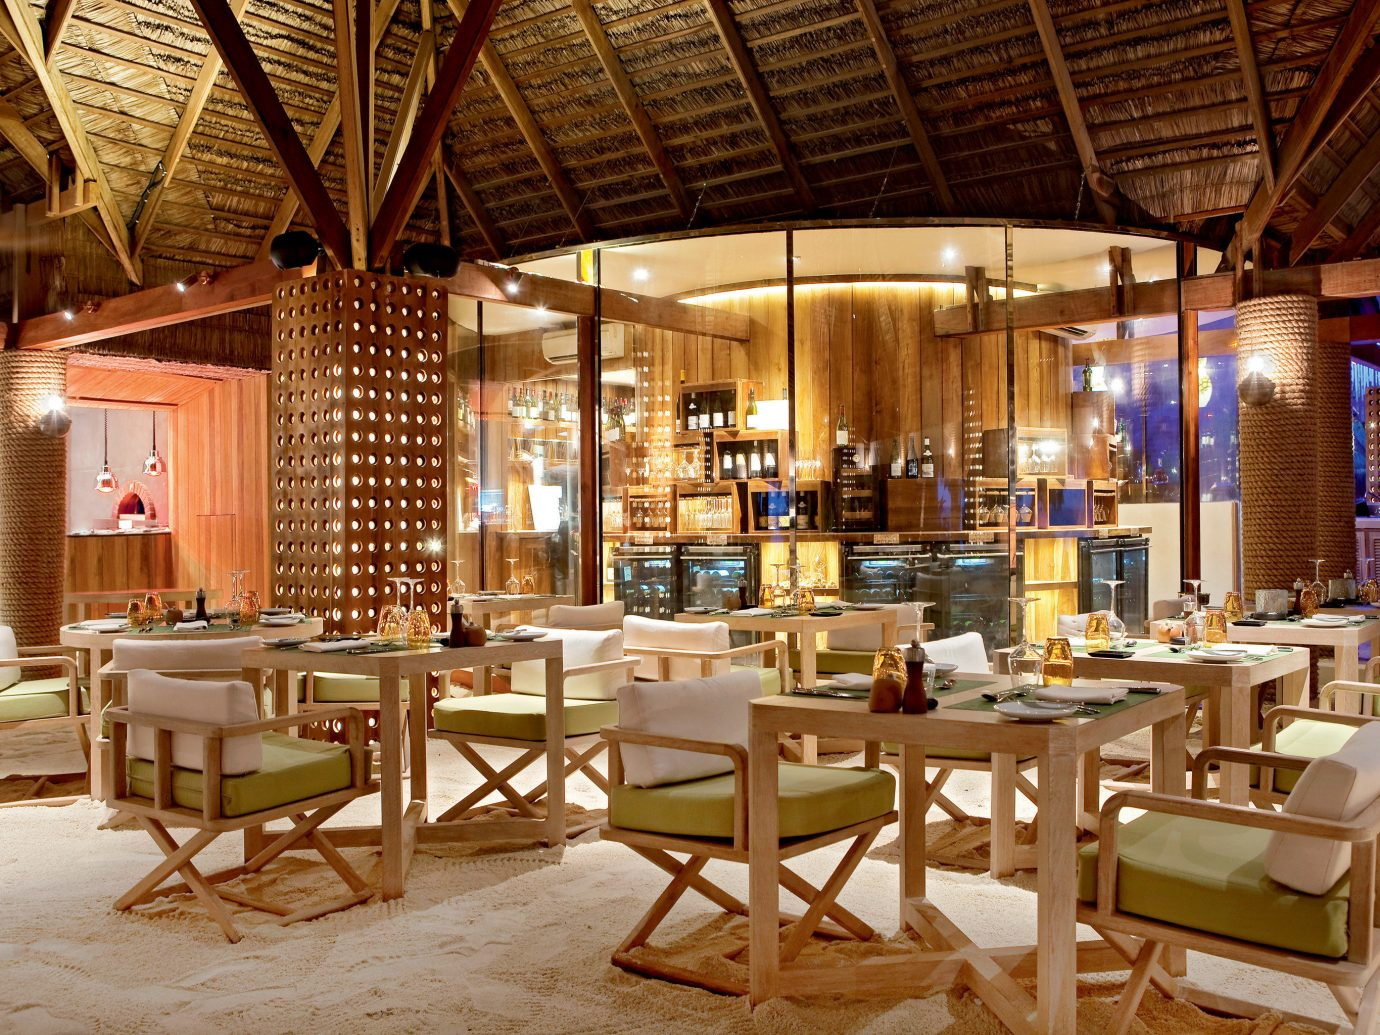 All-Inclusive Resorts Beachfront Dining Hotels Island Luxury Luxury Travel Romance Romantic table chair restaurant indoor room Resort meal café function hall interior design estate area several